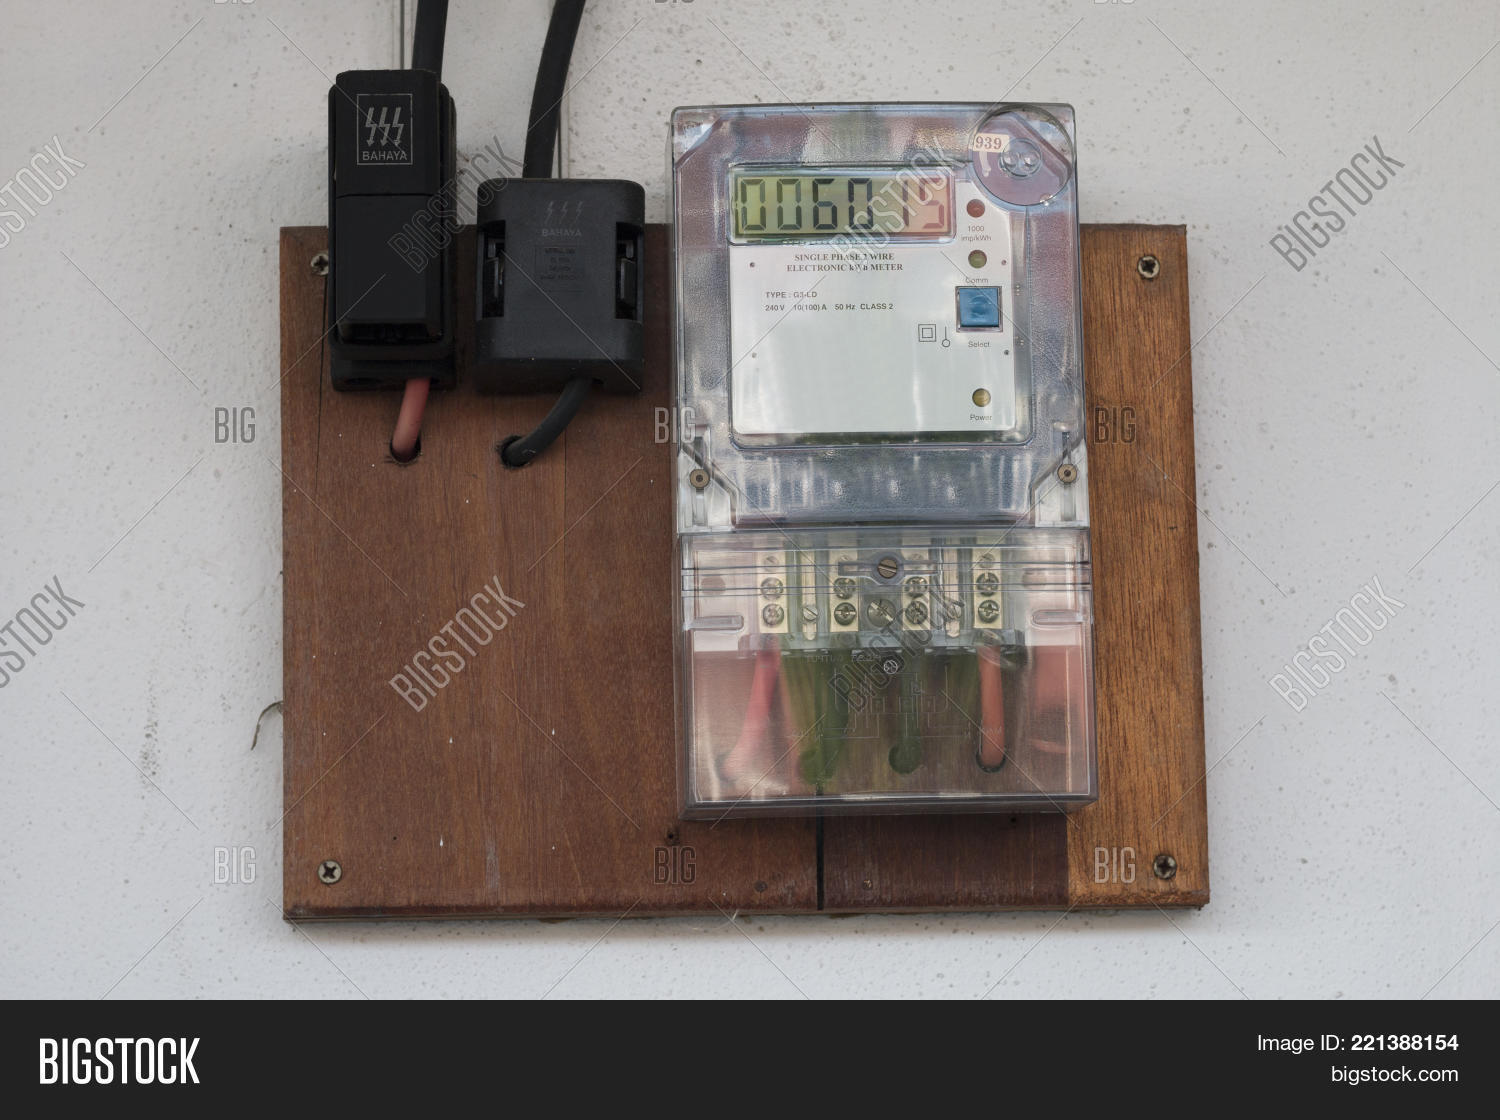 Home Electricity Meter Image & Photo (Free Trial) | Bigstock